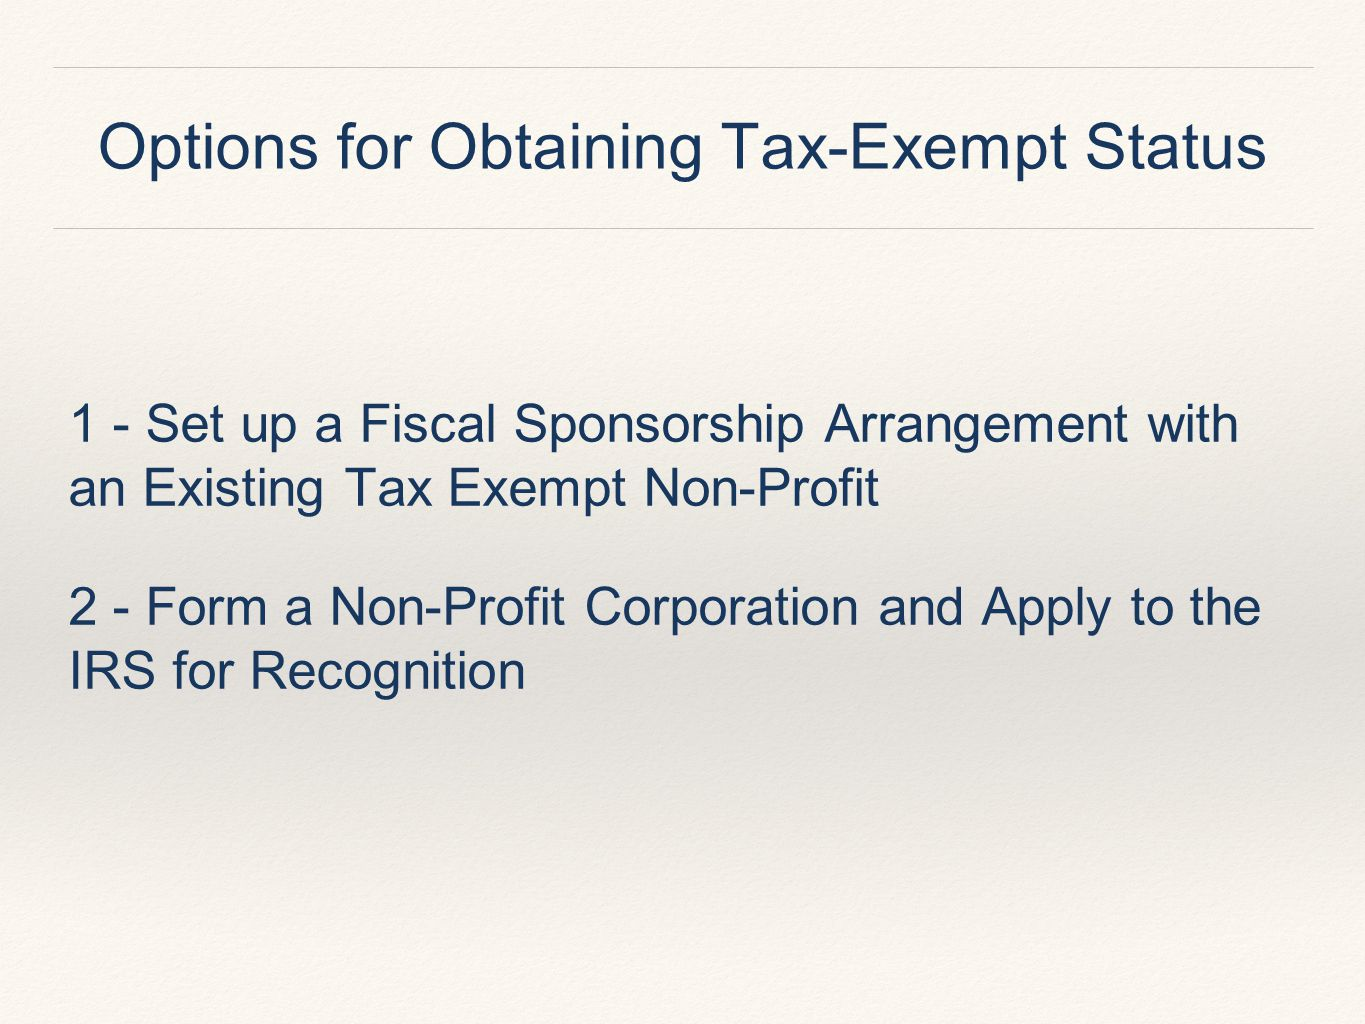 Options for Obtaining Tax-Exempt Status 1 - Set up a Fiscal Sponsorship Arrangement with an Existing Tax Exempt Non-Profit 2 - Form a Non-Profit Corporation and Apply to the IRS for Recognition